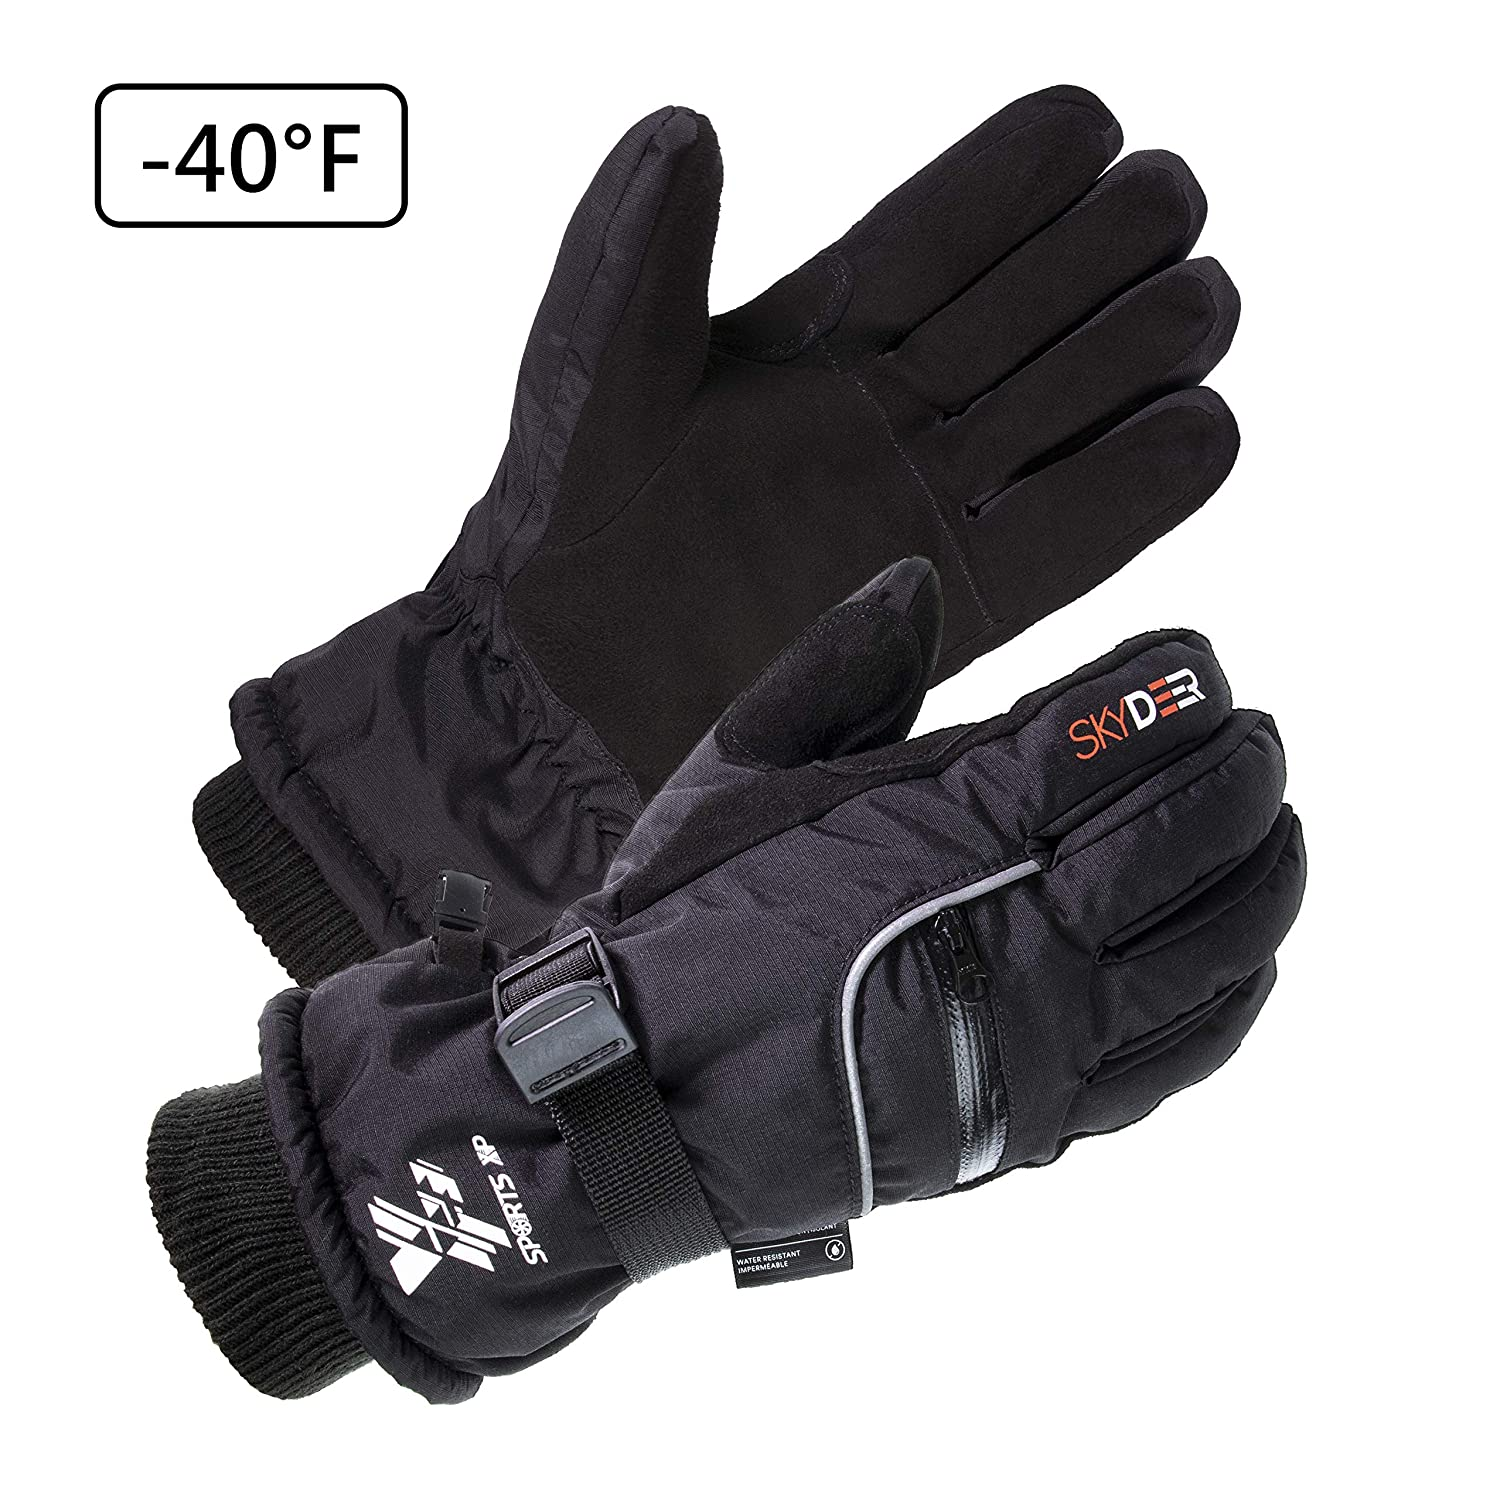 SKYDEER 3M Scotchgard Waterproof Genuine Deerskin Suede Leather Ski Gloves (SD8650T) SKYDEER CO.